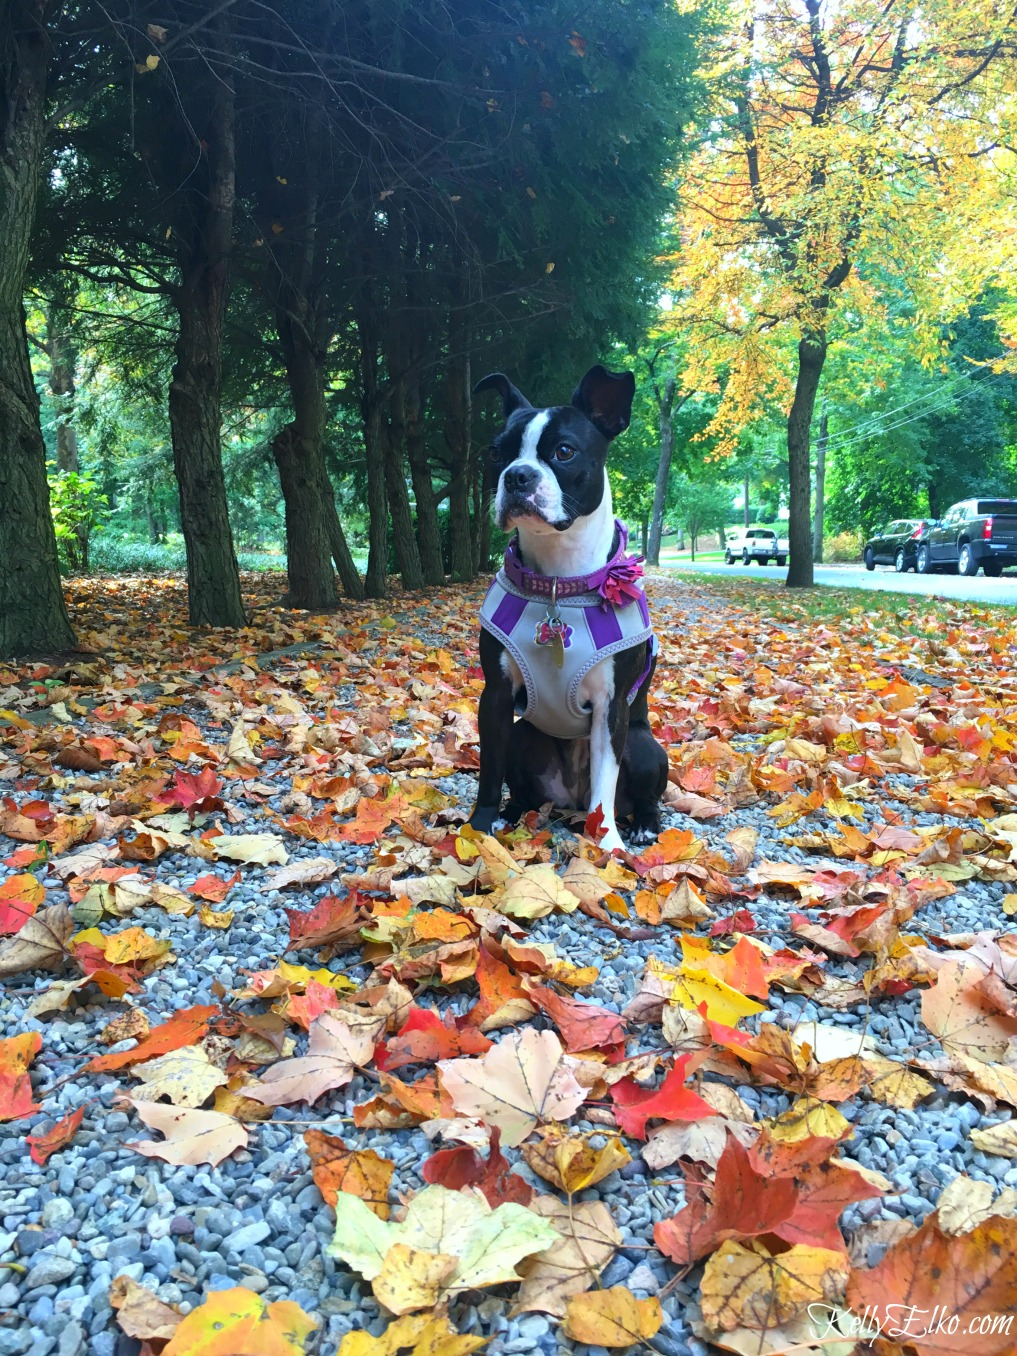 Boston Terrier on a walk through the fall leaves kellyelko.com #fall #fallfoliage #bostonterrier